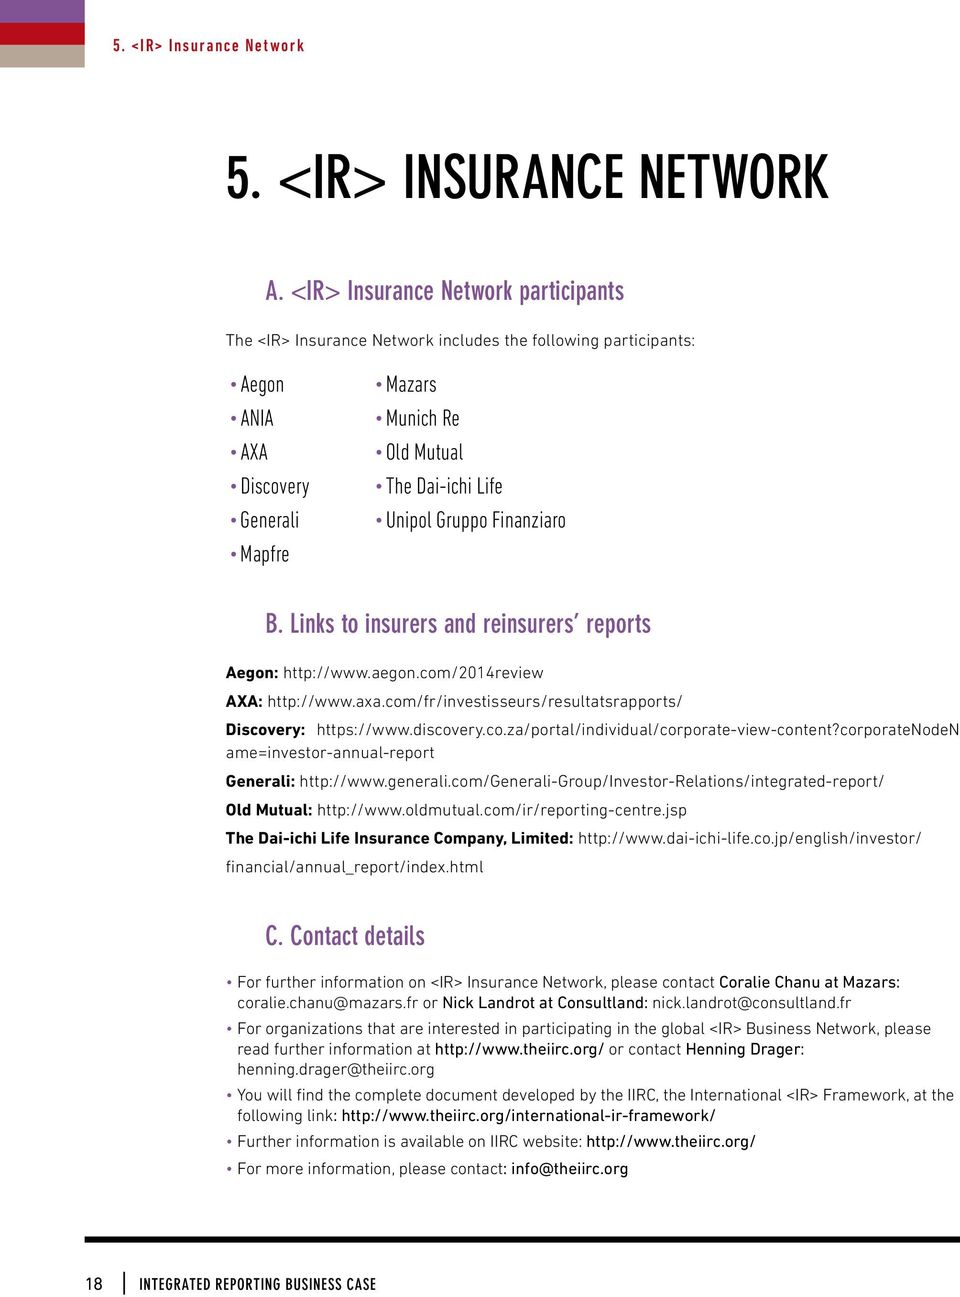 Gruppo Finanziaro B. Links to insurers and reinsurers reports Aegon: http://www.aegon.com/2014review AXA: http://www.axa.com/fr/investisseurs/resultatsrapports/ Discovery: https://www.discovery.co.za/portal/individual/corporate-view-content?